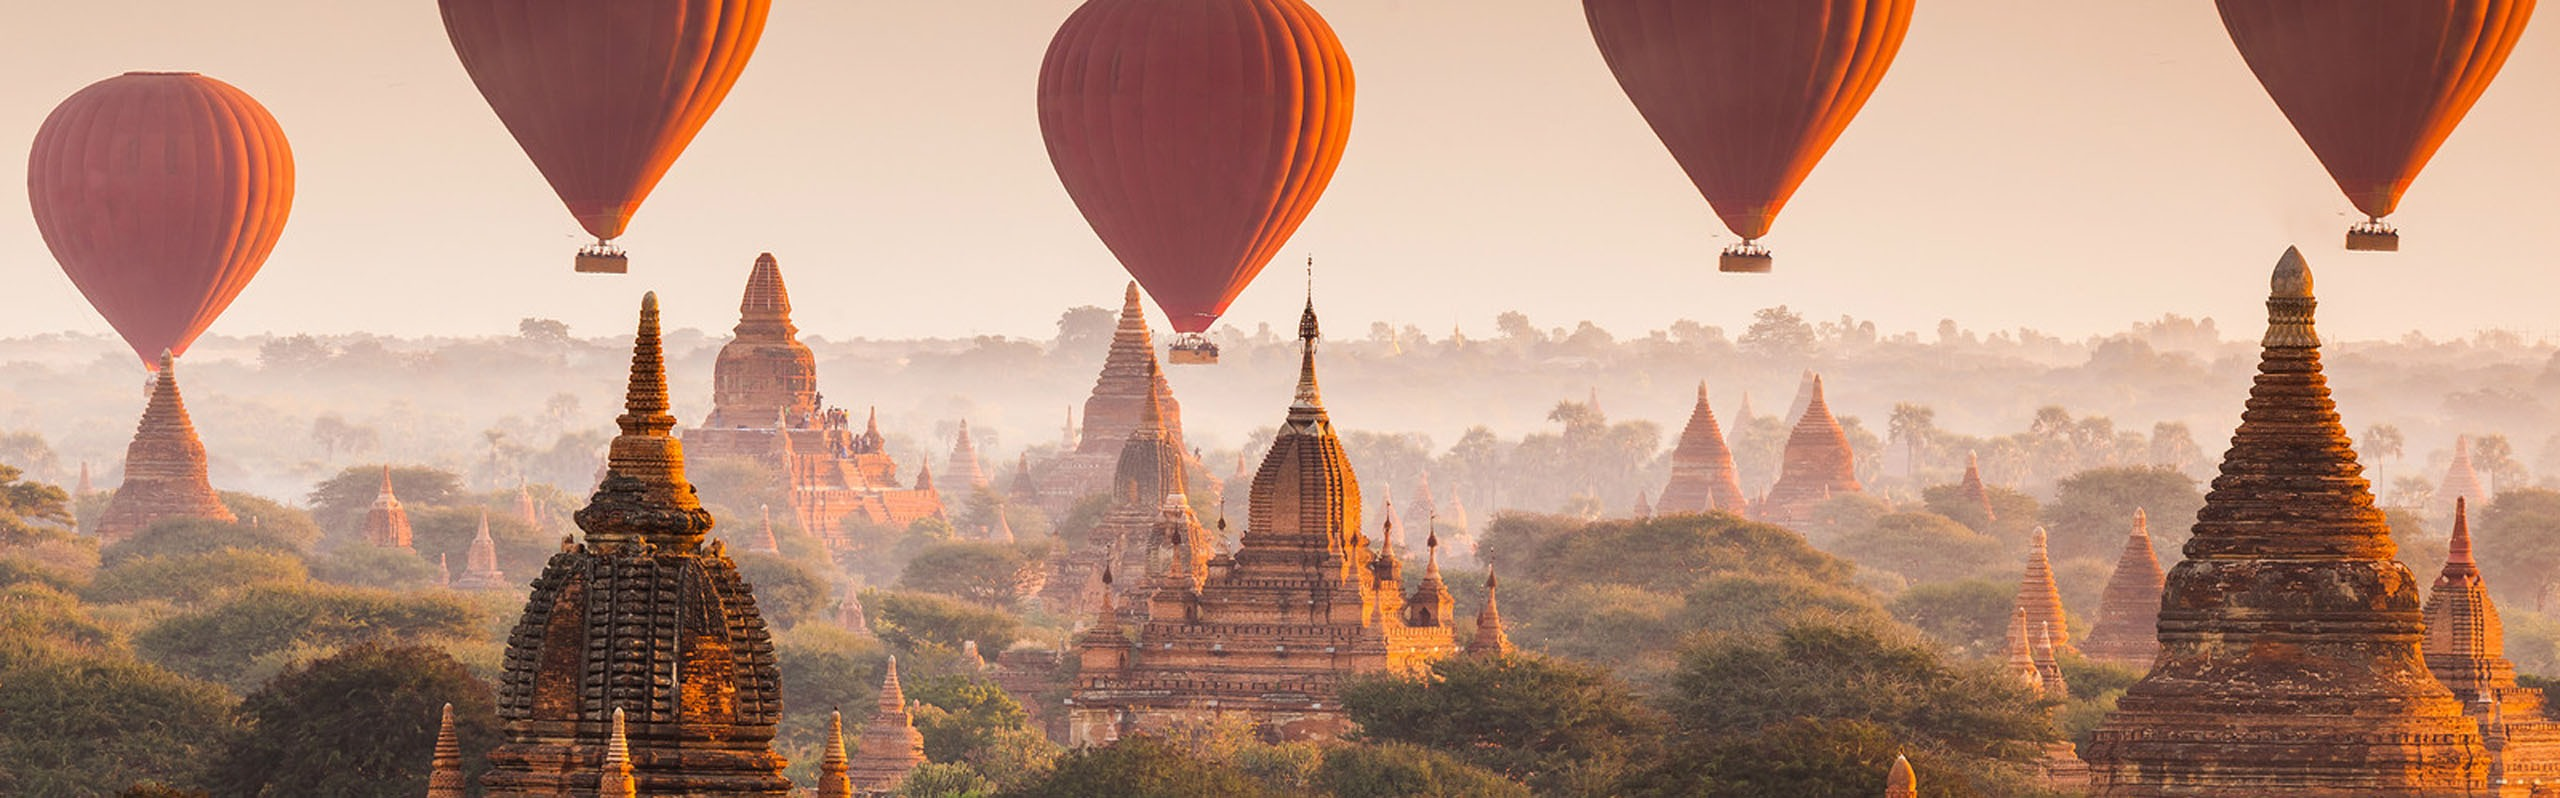 How to Book a Balloon Flight in Bagan